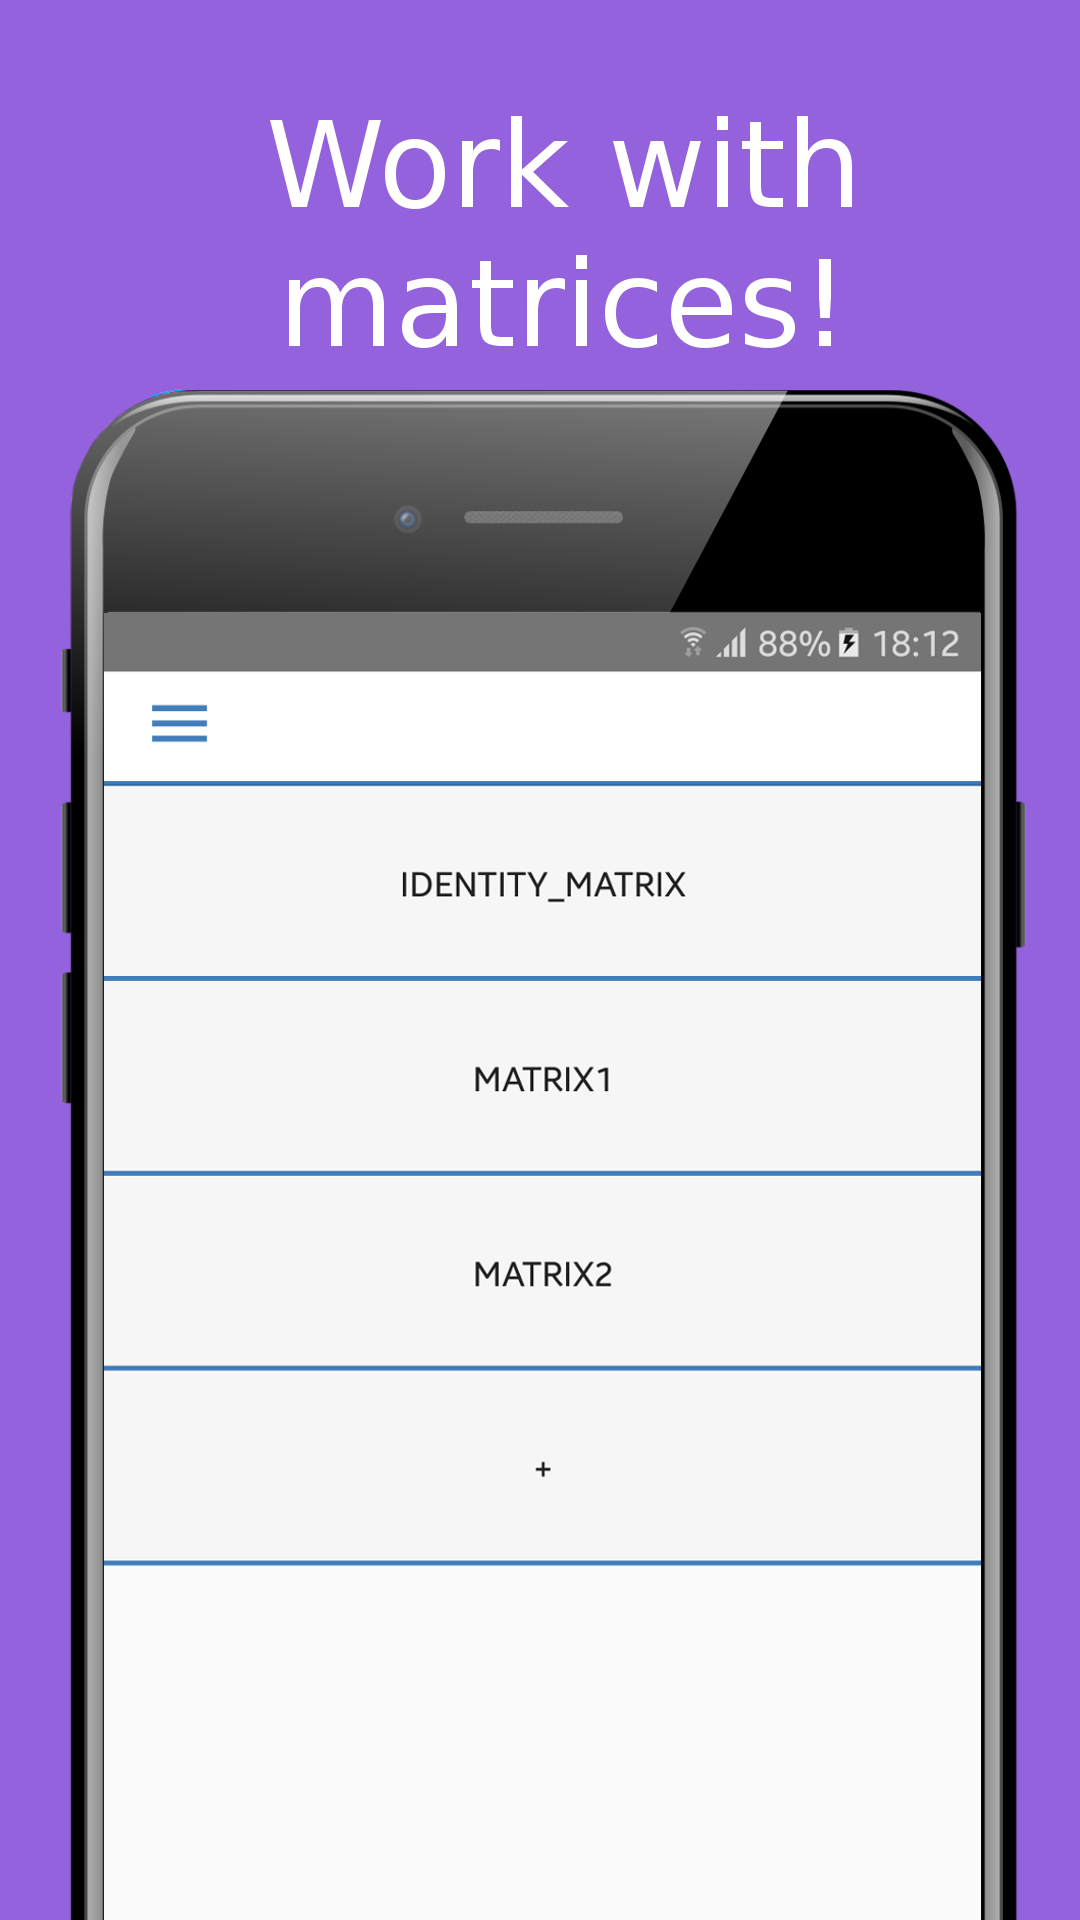 CMG Calculator - calculations, graph plotting, matrix operations and more: Amazon.es: Appstore para Android